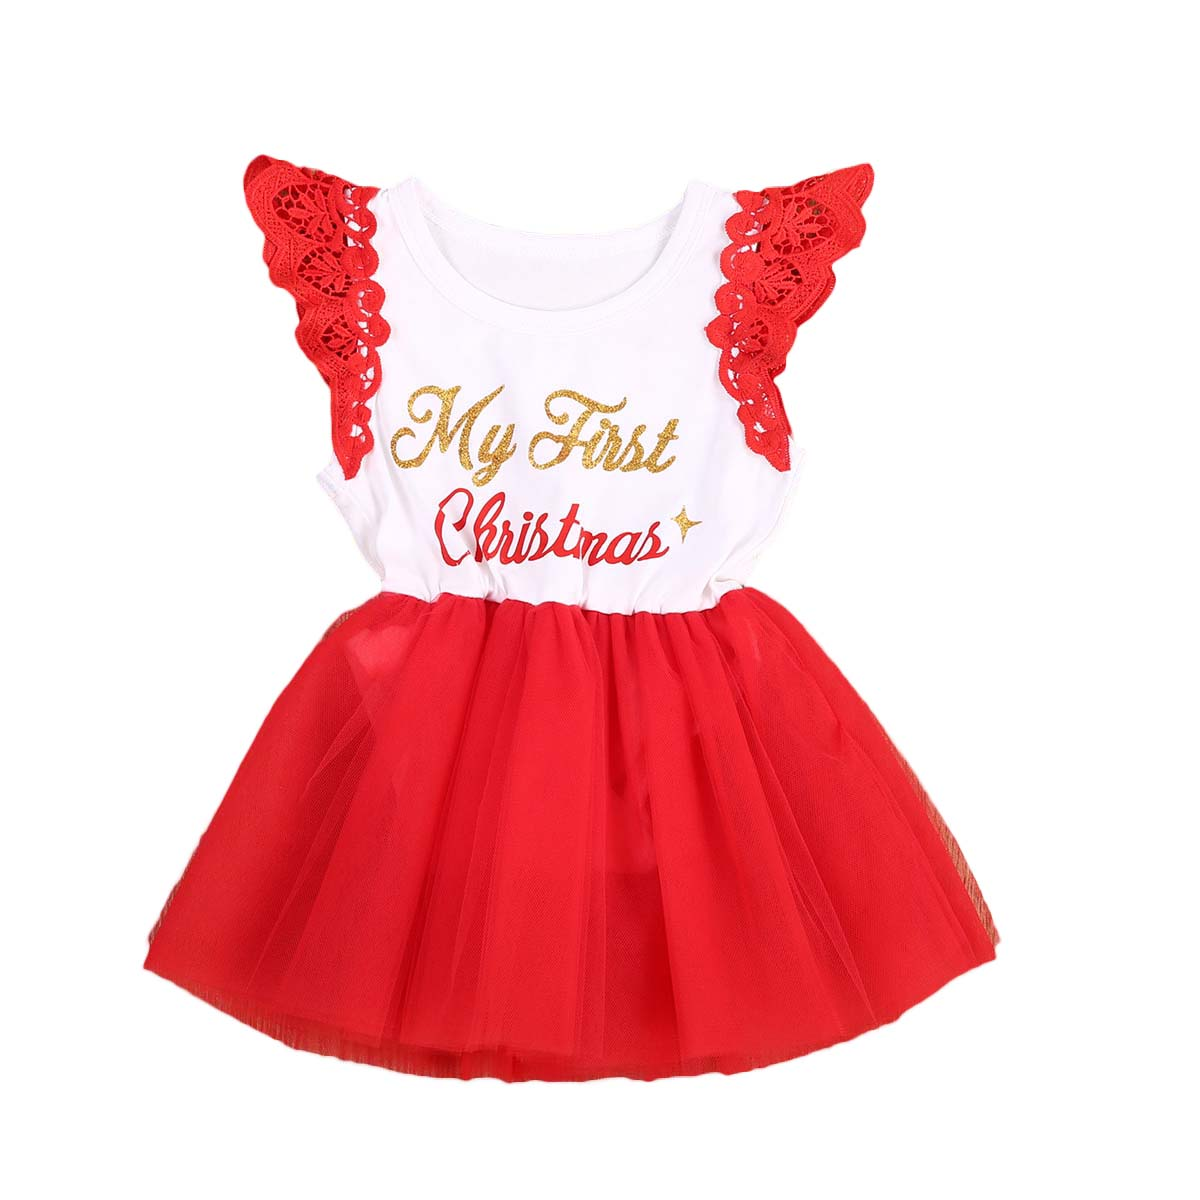 Pudcoco 2017 New Christmas Baby Girls Romper Cute Letter Lace Off shoulder Princess Red Romper Jumpsuit for baby first christmas